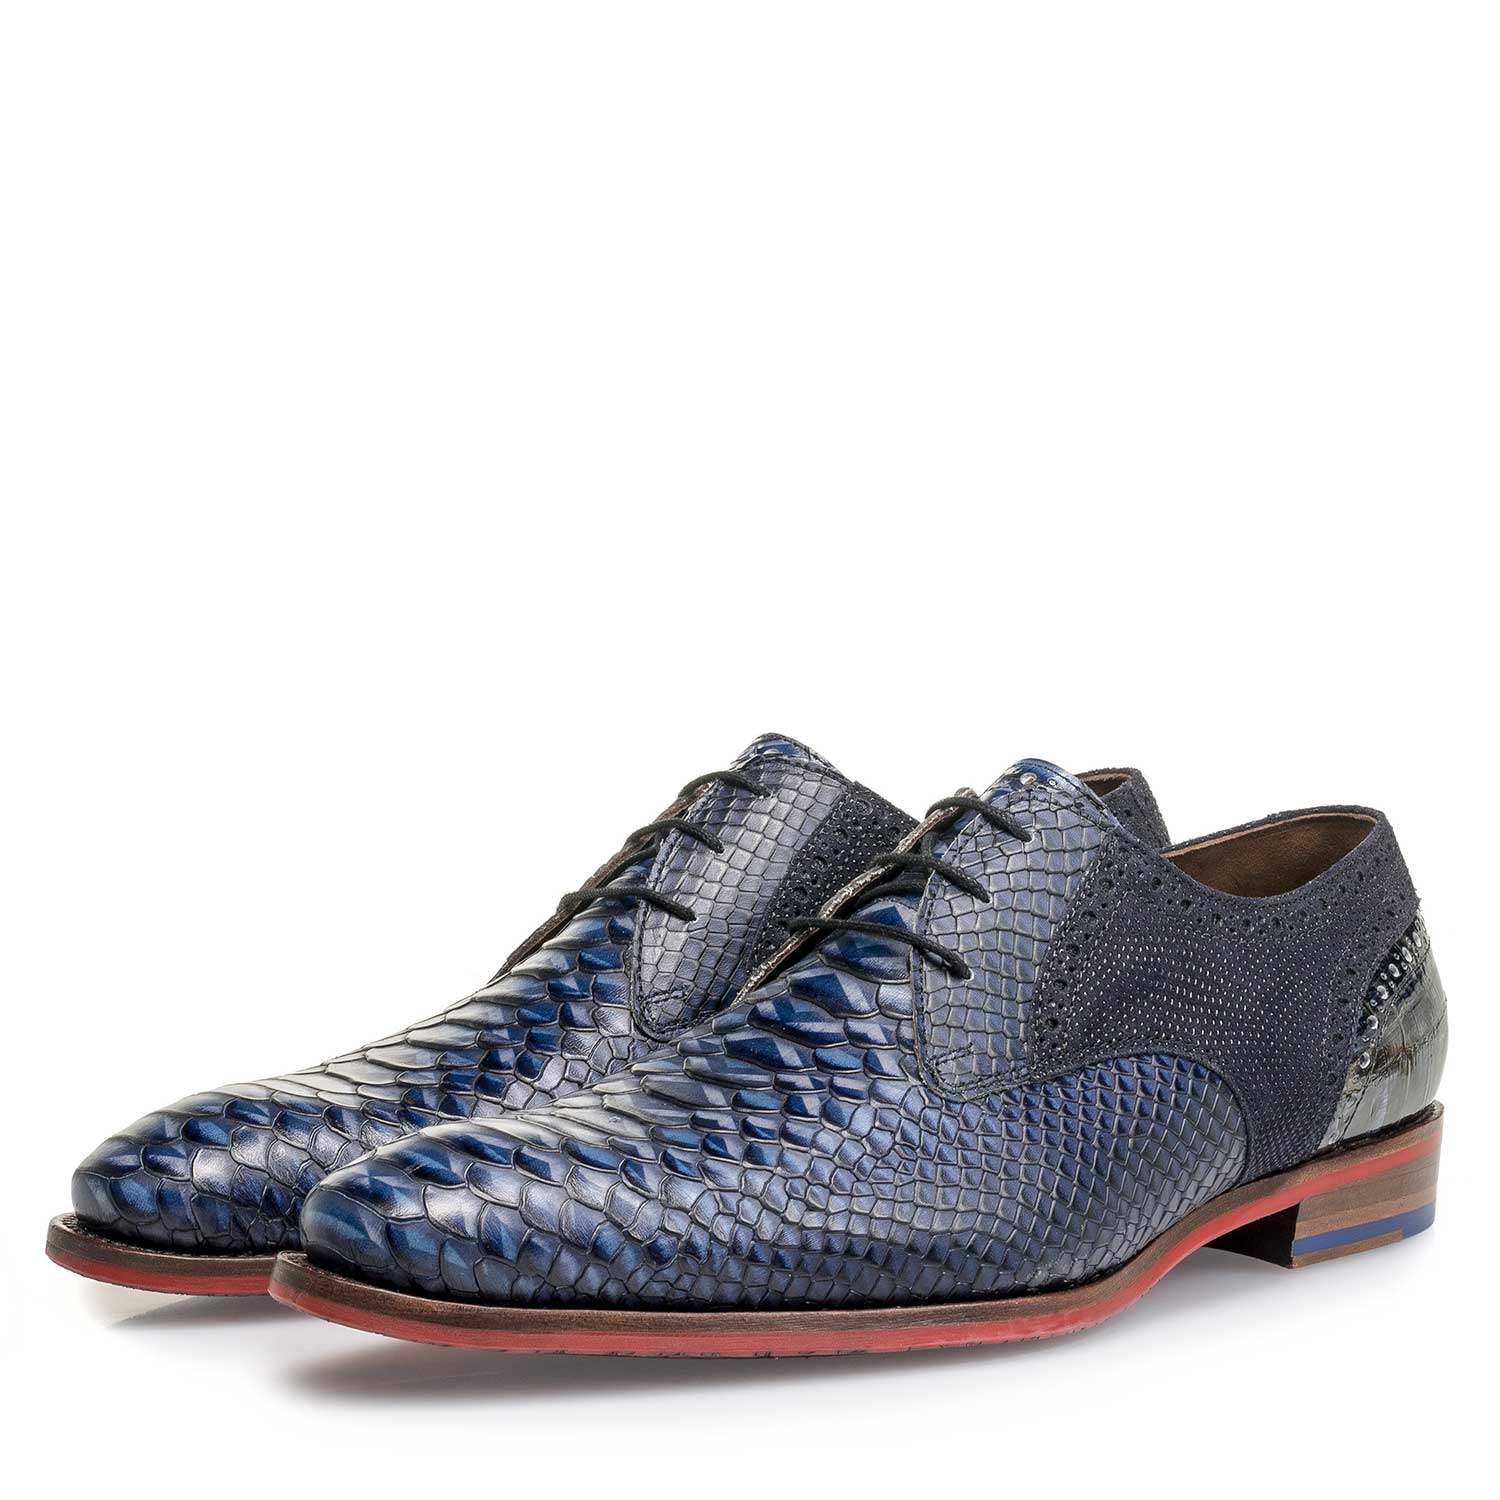 18106/00 - Blue snake print leather lace shoe